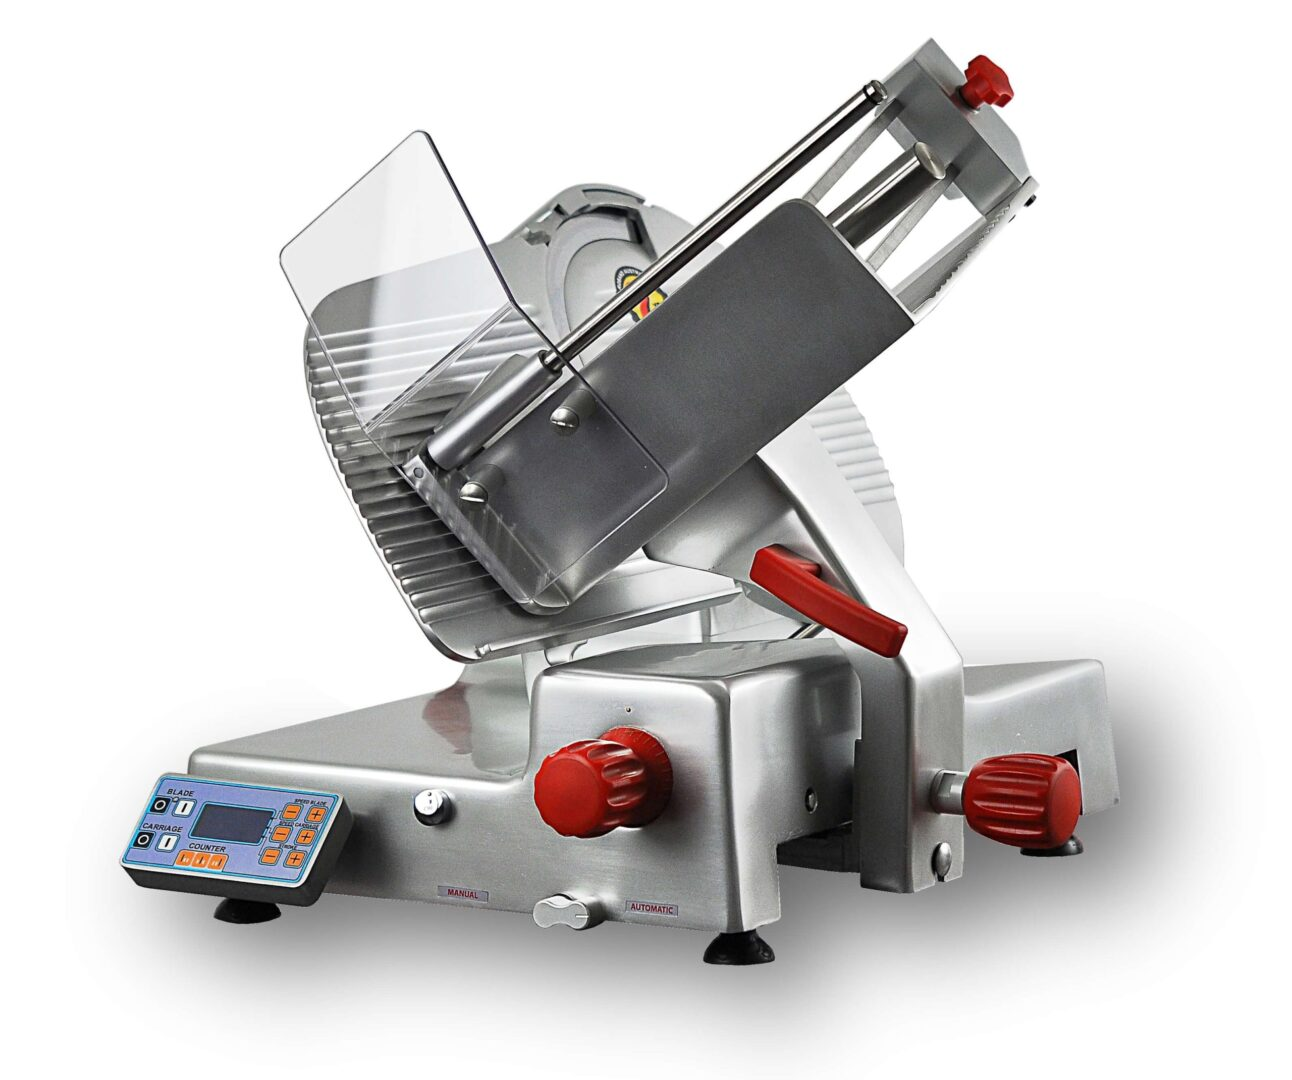 NOAW Fully Automatic Slicer - Heavy Duty